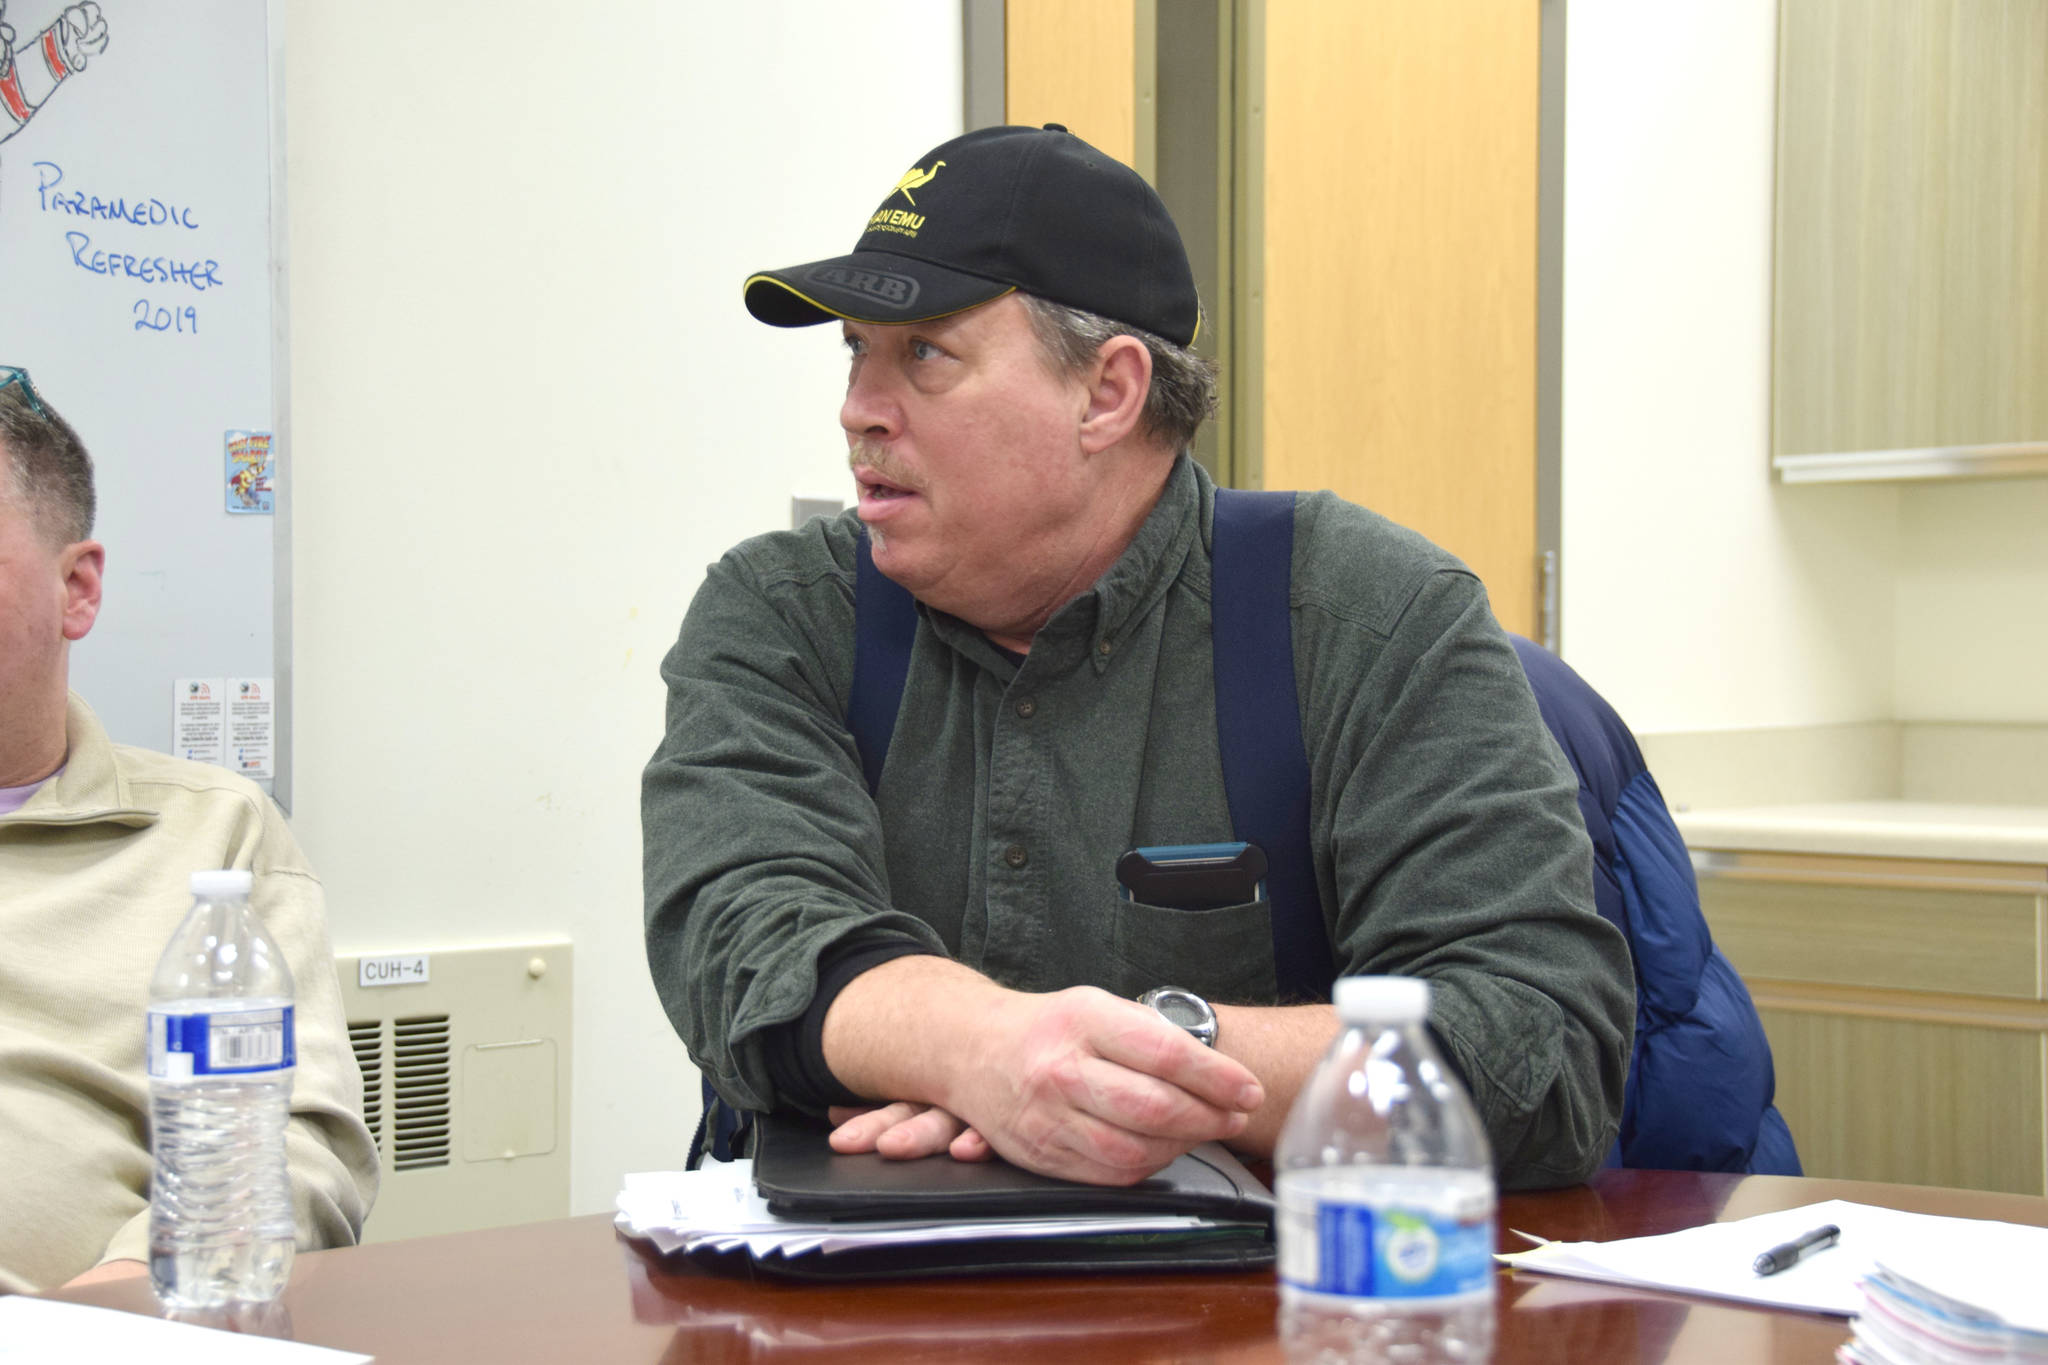 Paul Huber, co-chair of the Citizens for Nikiski Incorporation, speaks at a meeting at the Nikiski Fire Station 2 on Thursday, Jan. 24, 2019.